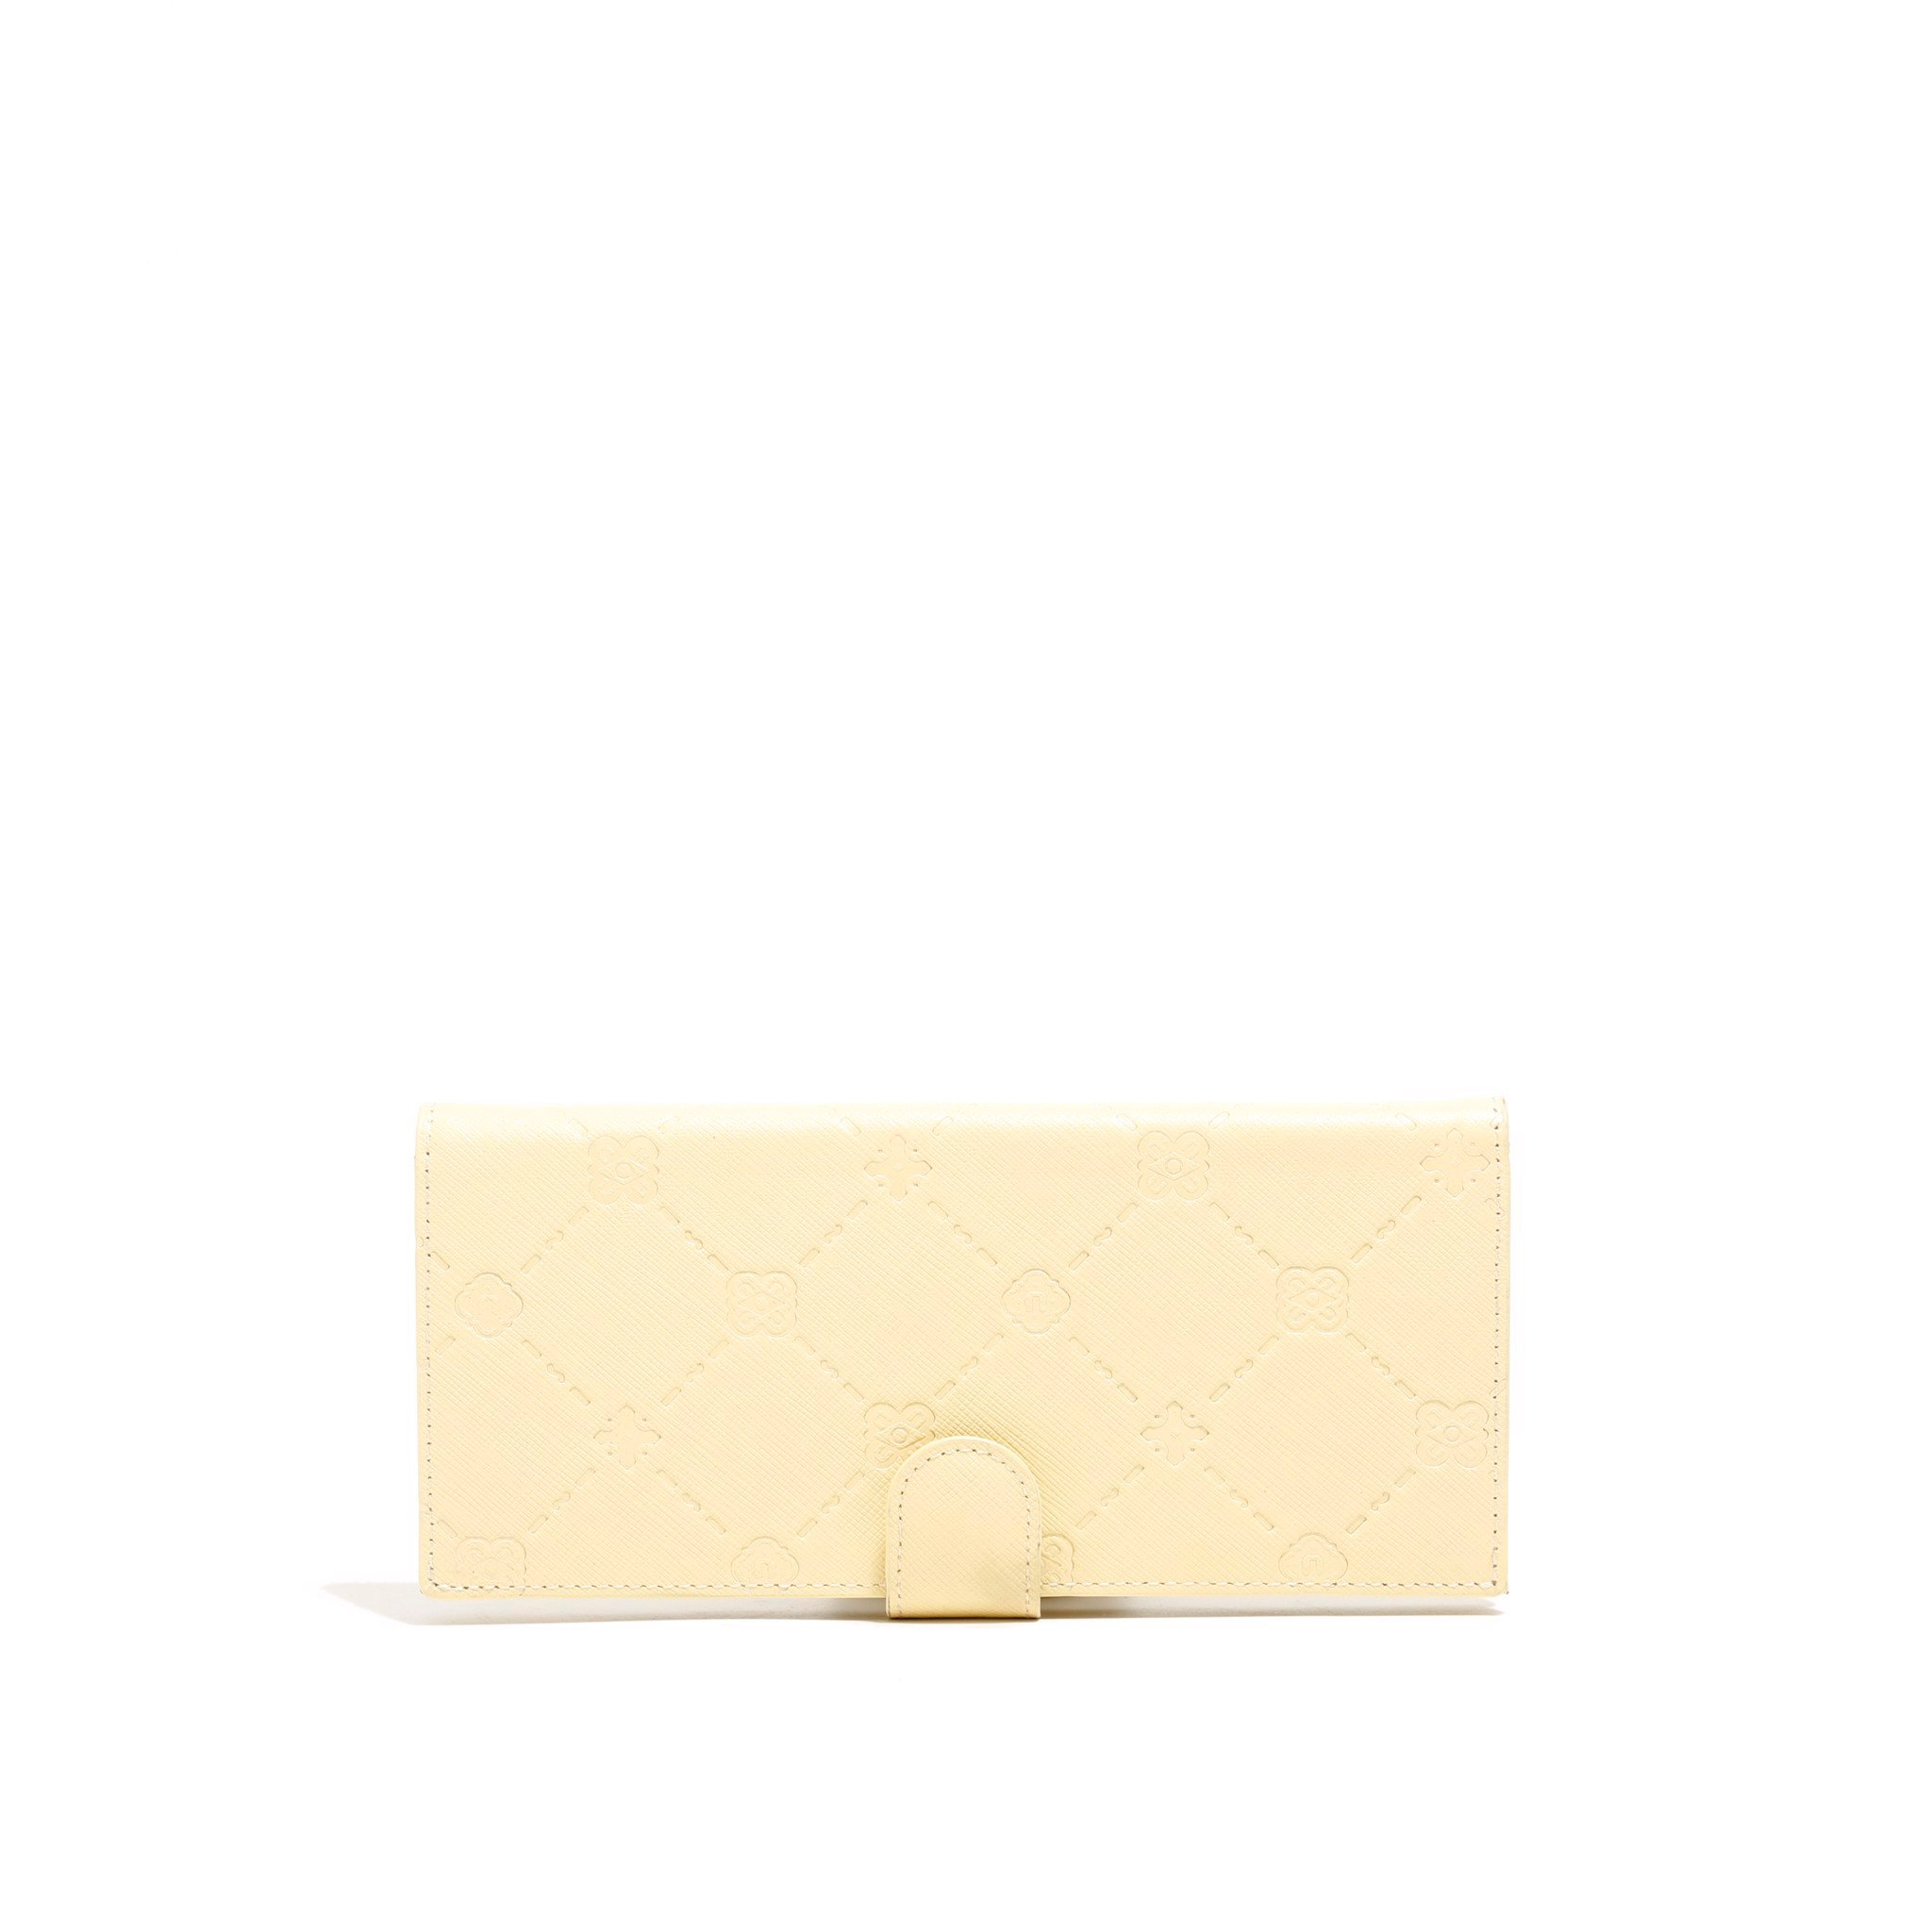 LOLIPOP LONG WALLET TAN